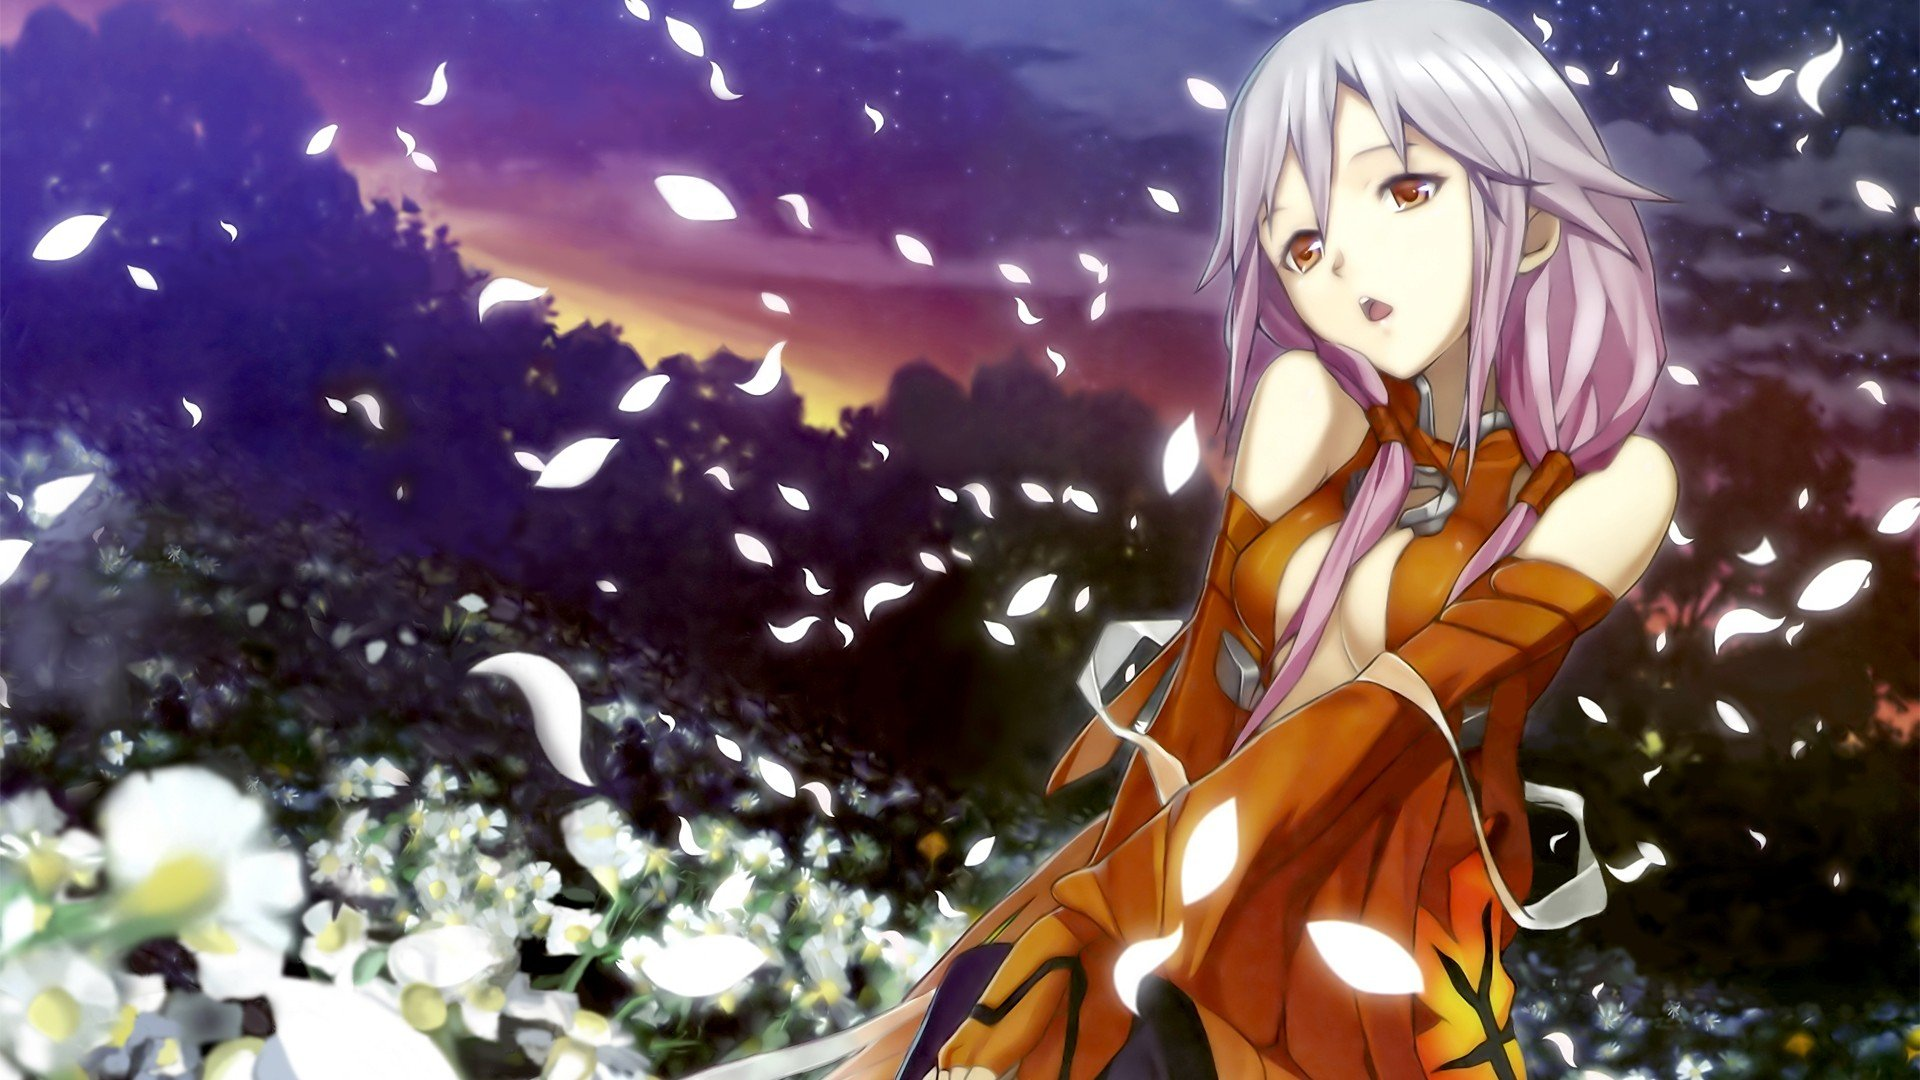 Flowers red eyes flower petals anime girls guilty crown yuzuriha flowers red eyes flower petals anime girls guilty crown yuzuriha inori wallpaper 1920x1080 328213 wallpaperup izmirmasajfo